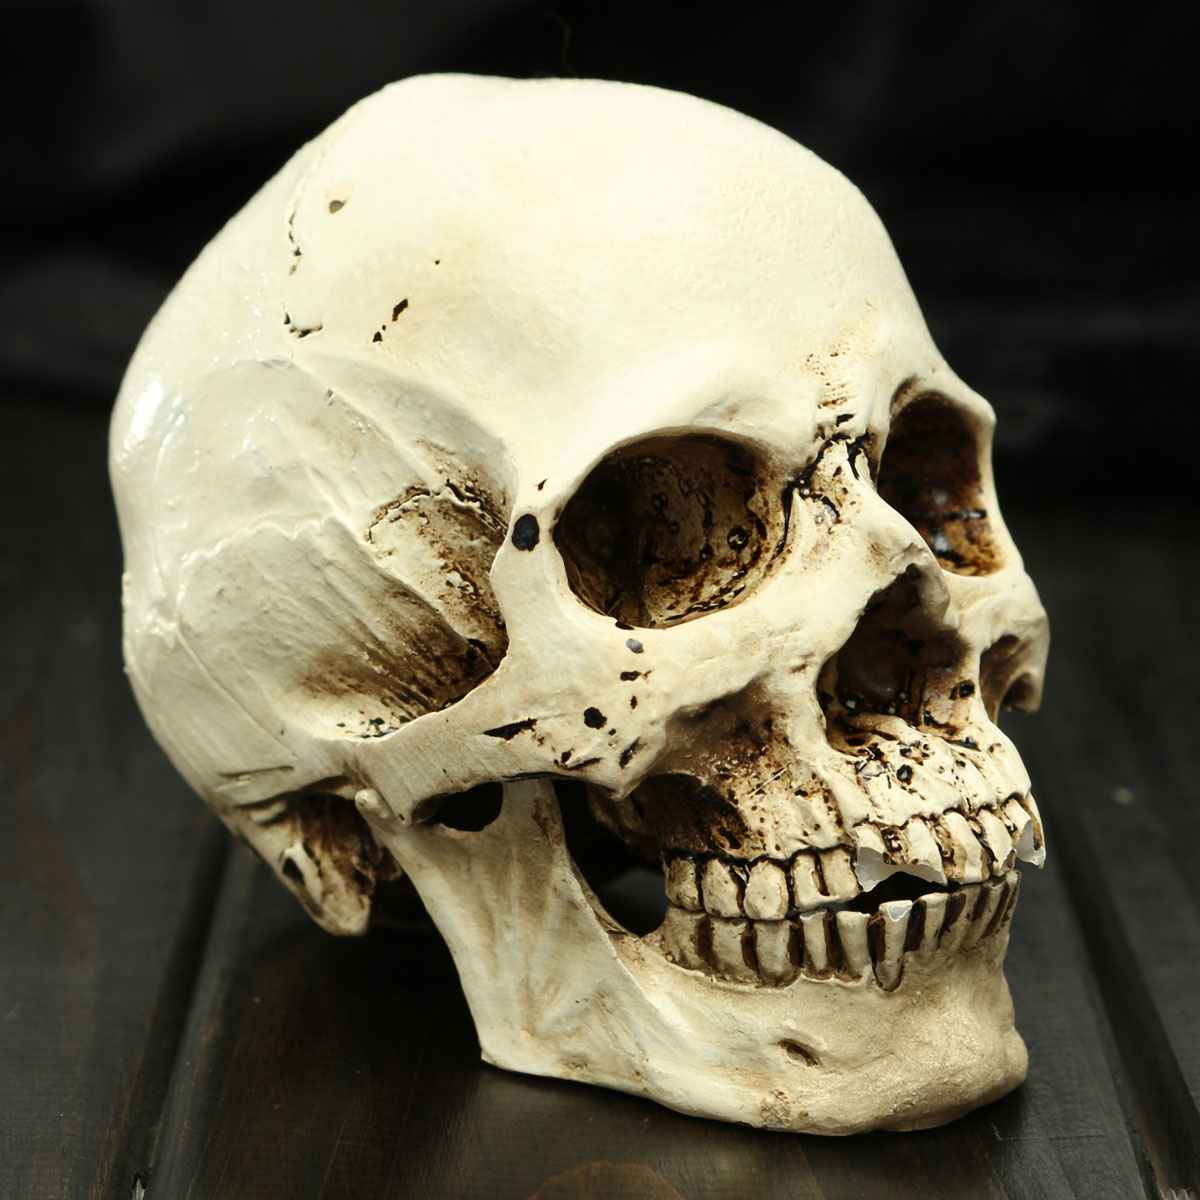 New Halloween Props Small Human Skull Replica Resin White Head Skull Model Gifts Haunted House Room Escape Horrible Supplies(China (Mainland))